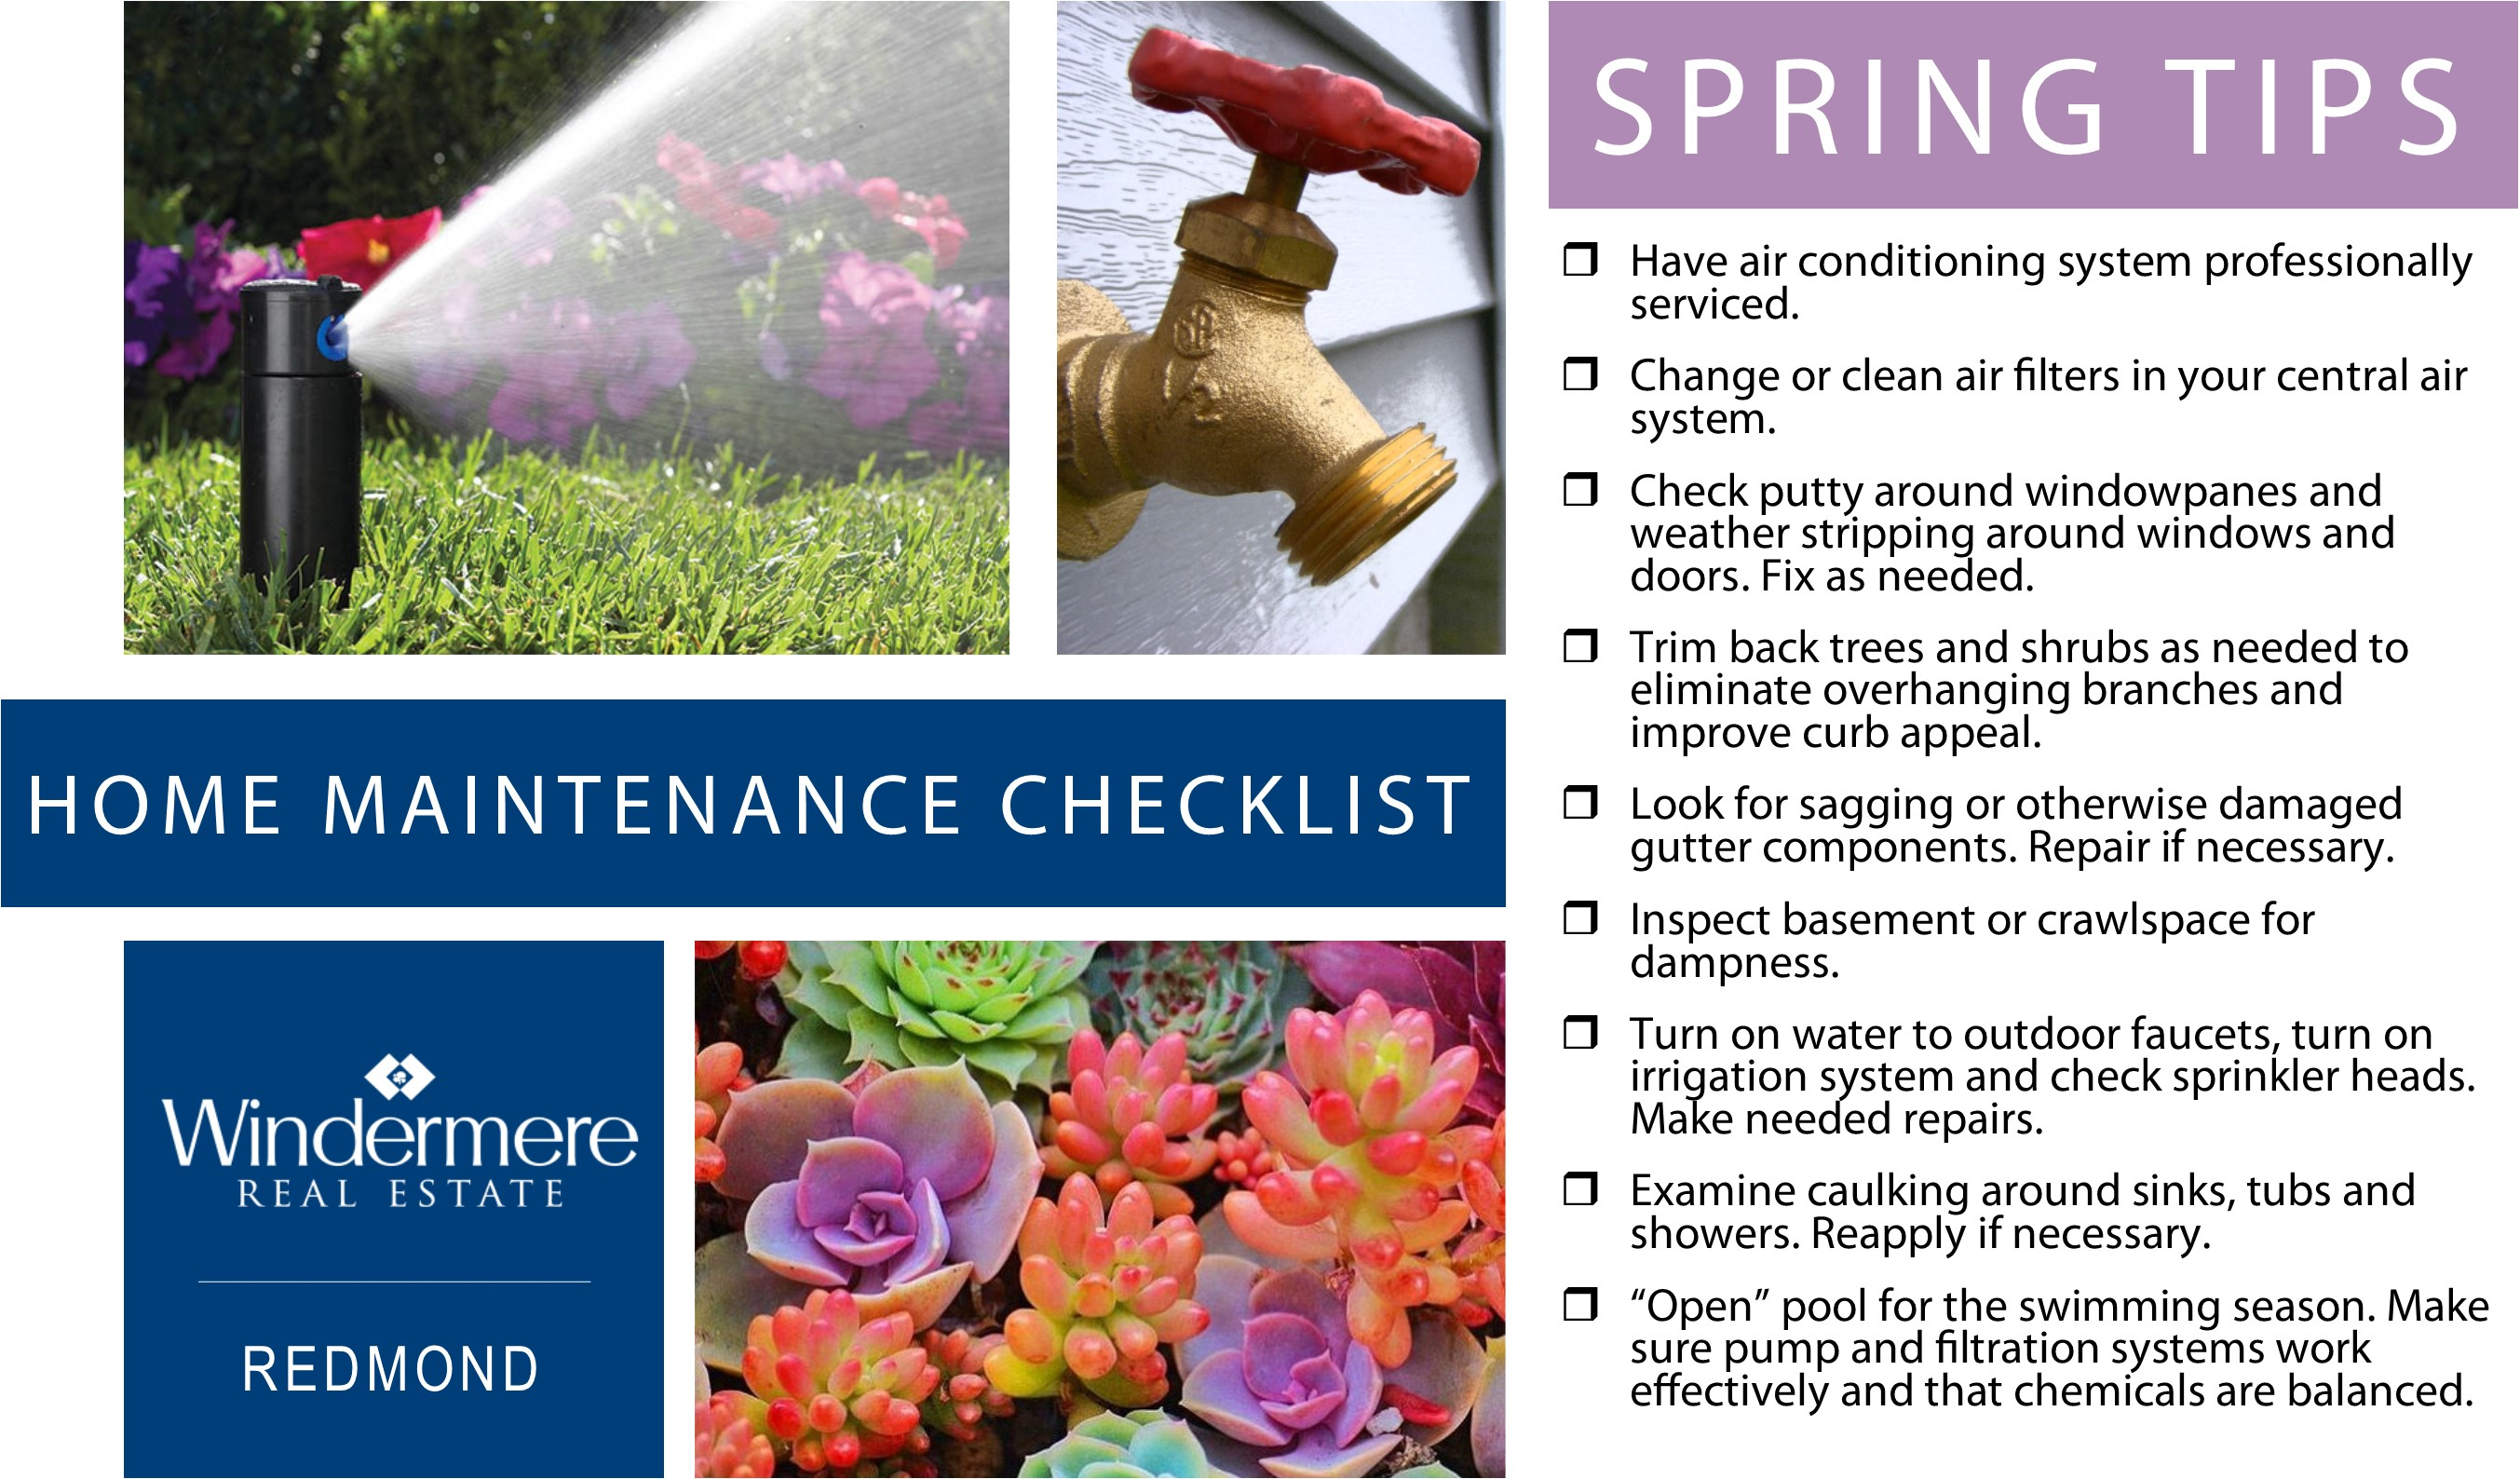 Spring home maintenance tips simple spring home maintenance tips visitvortex magazine - Home secrets brief cleaning guide ...